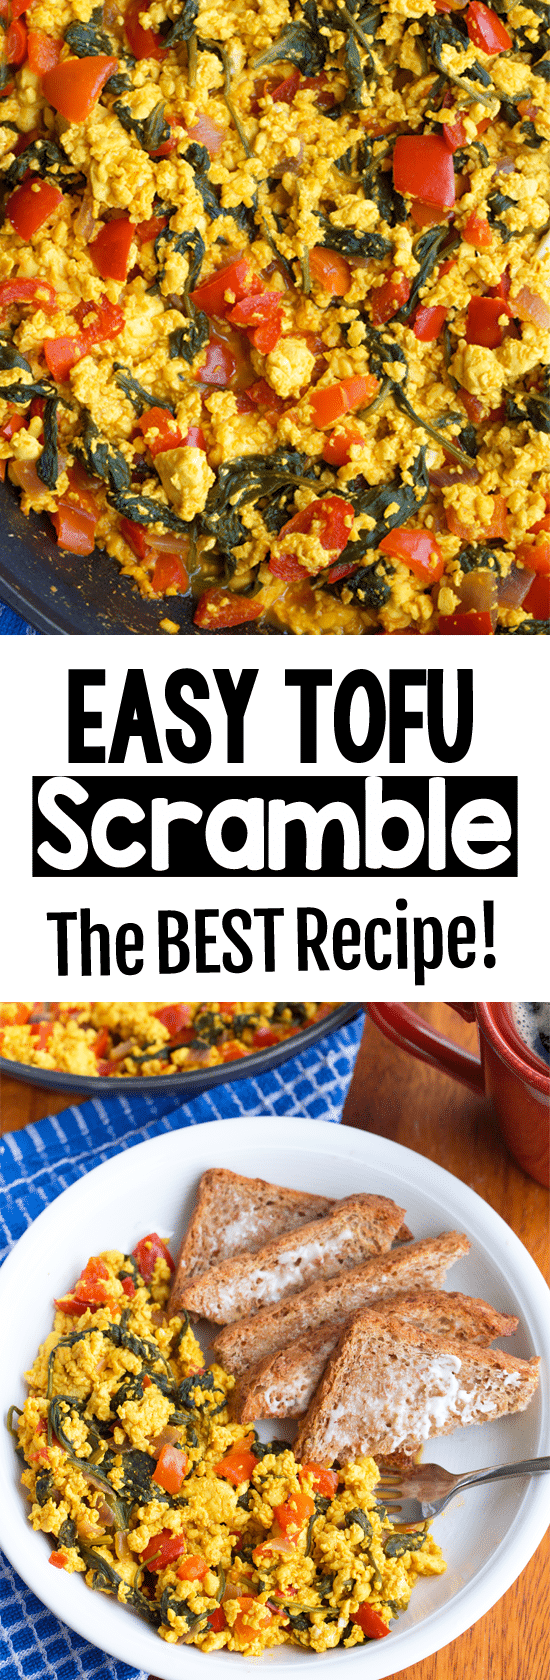 The Best Easy Vegan Breakfast Scrambled Tofu Recipe